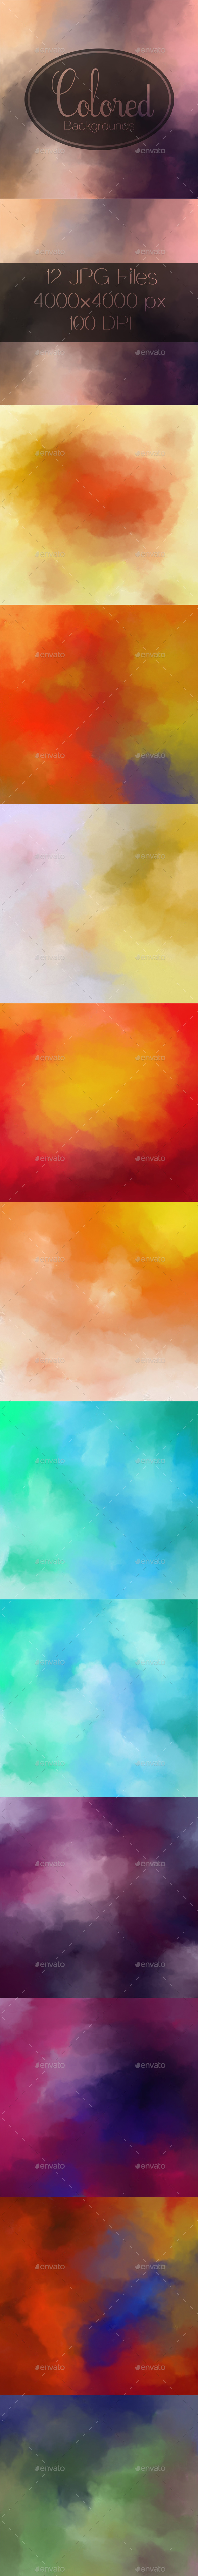 GraphicRiver Colored Backgrounds 20331745